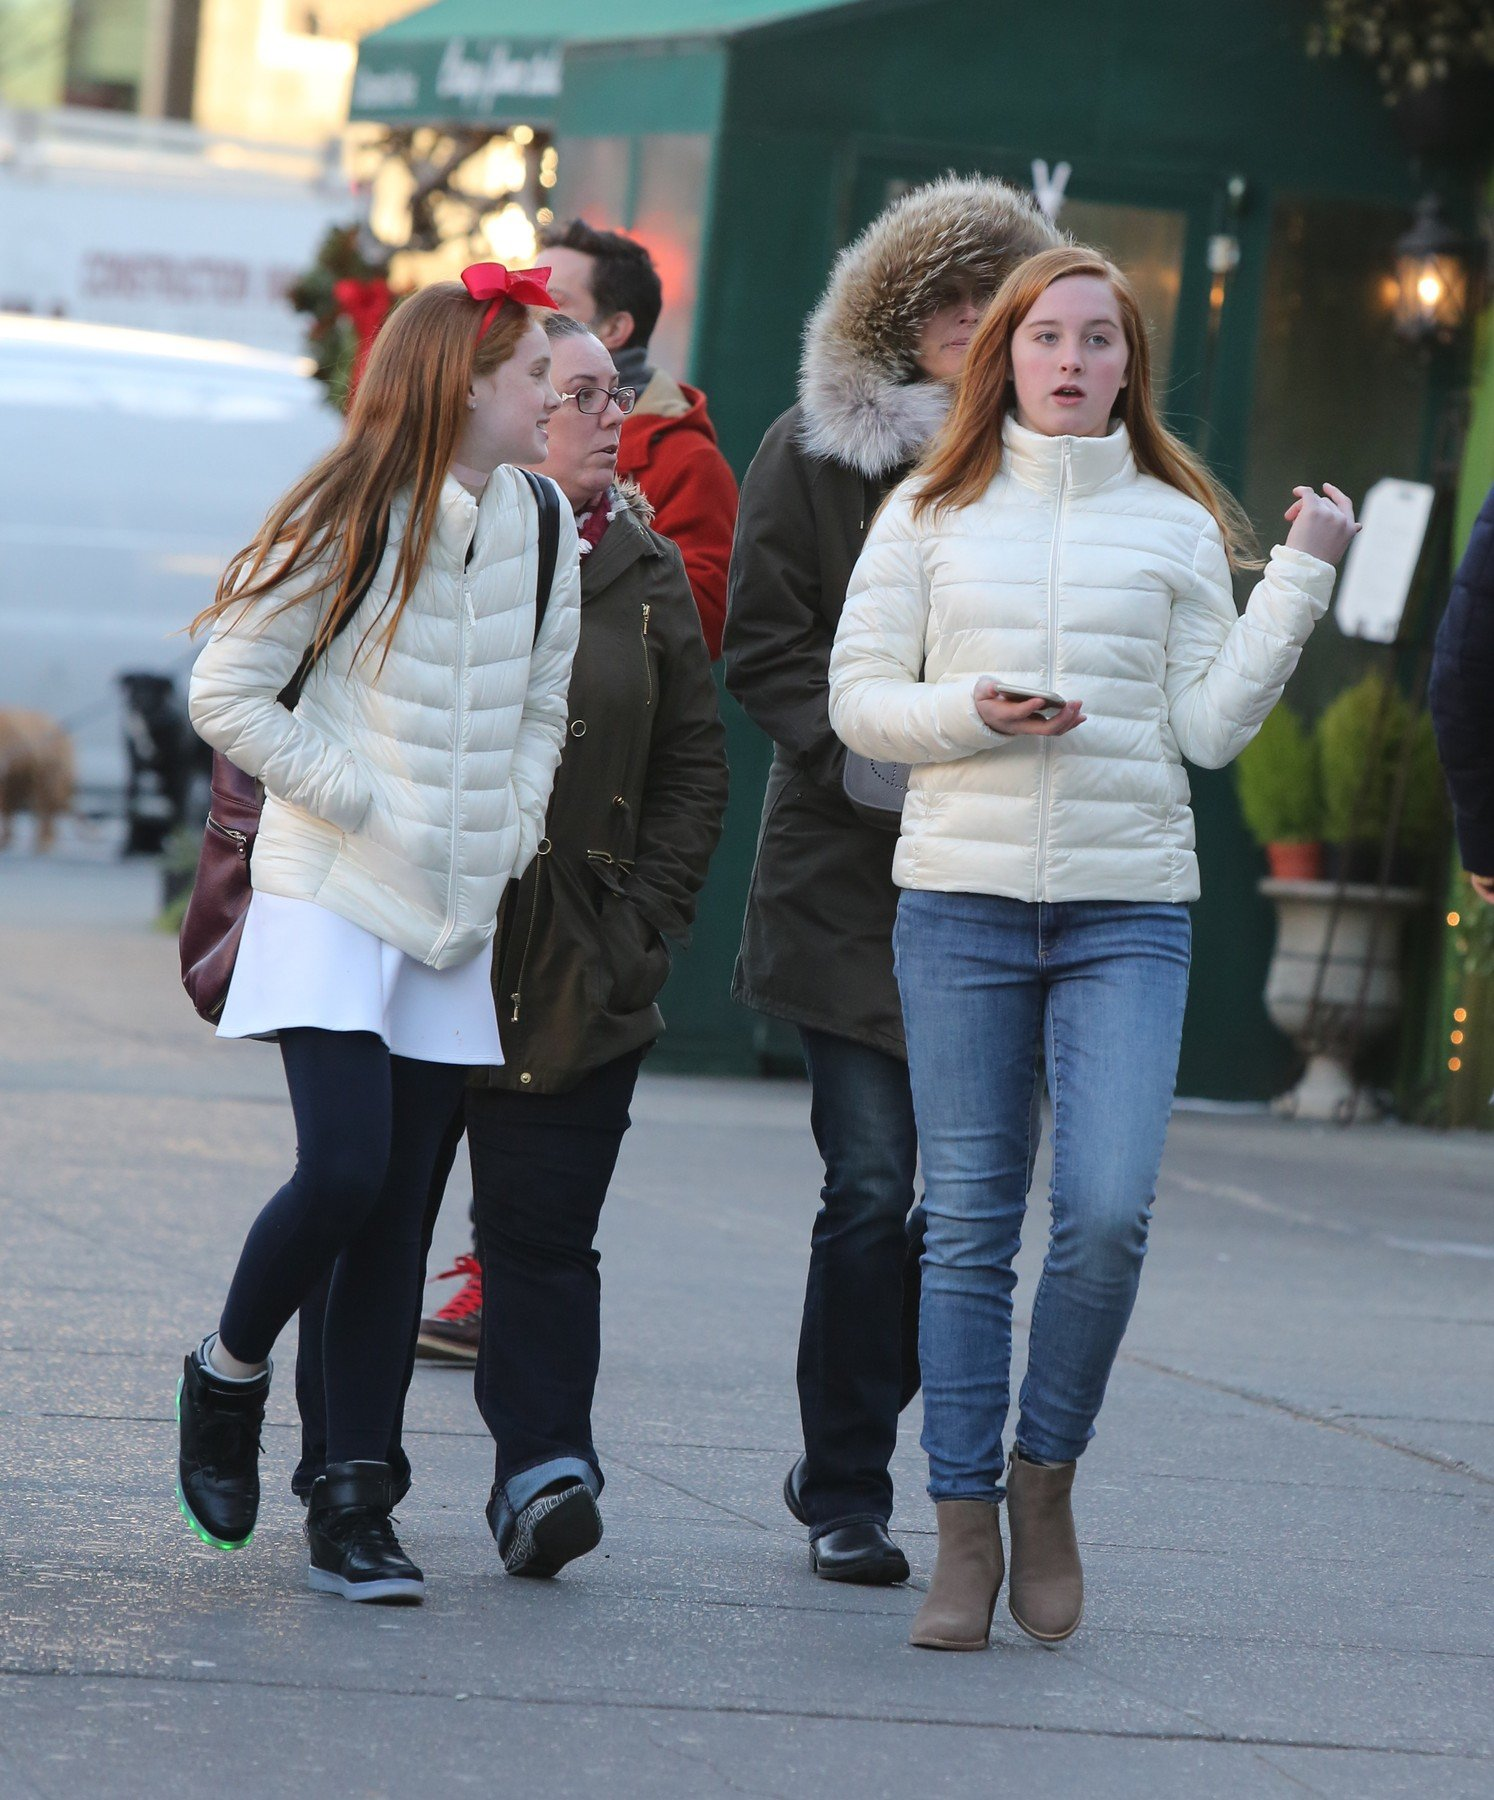 -New York, NY - 12/20/16 -  Brooke Shields shopping with her daughters Rowan Henchy, and Grier Henchy, and friends in the West Village  -PICTURED: Brooke Shields, Rowan Henchy, Grier Henchy -, Image: 309203788, License: Rights-managed, Restrictions: , Model Release: no, Credit line: Profimedia, INSTAR Images